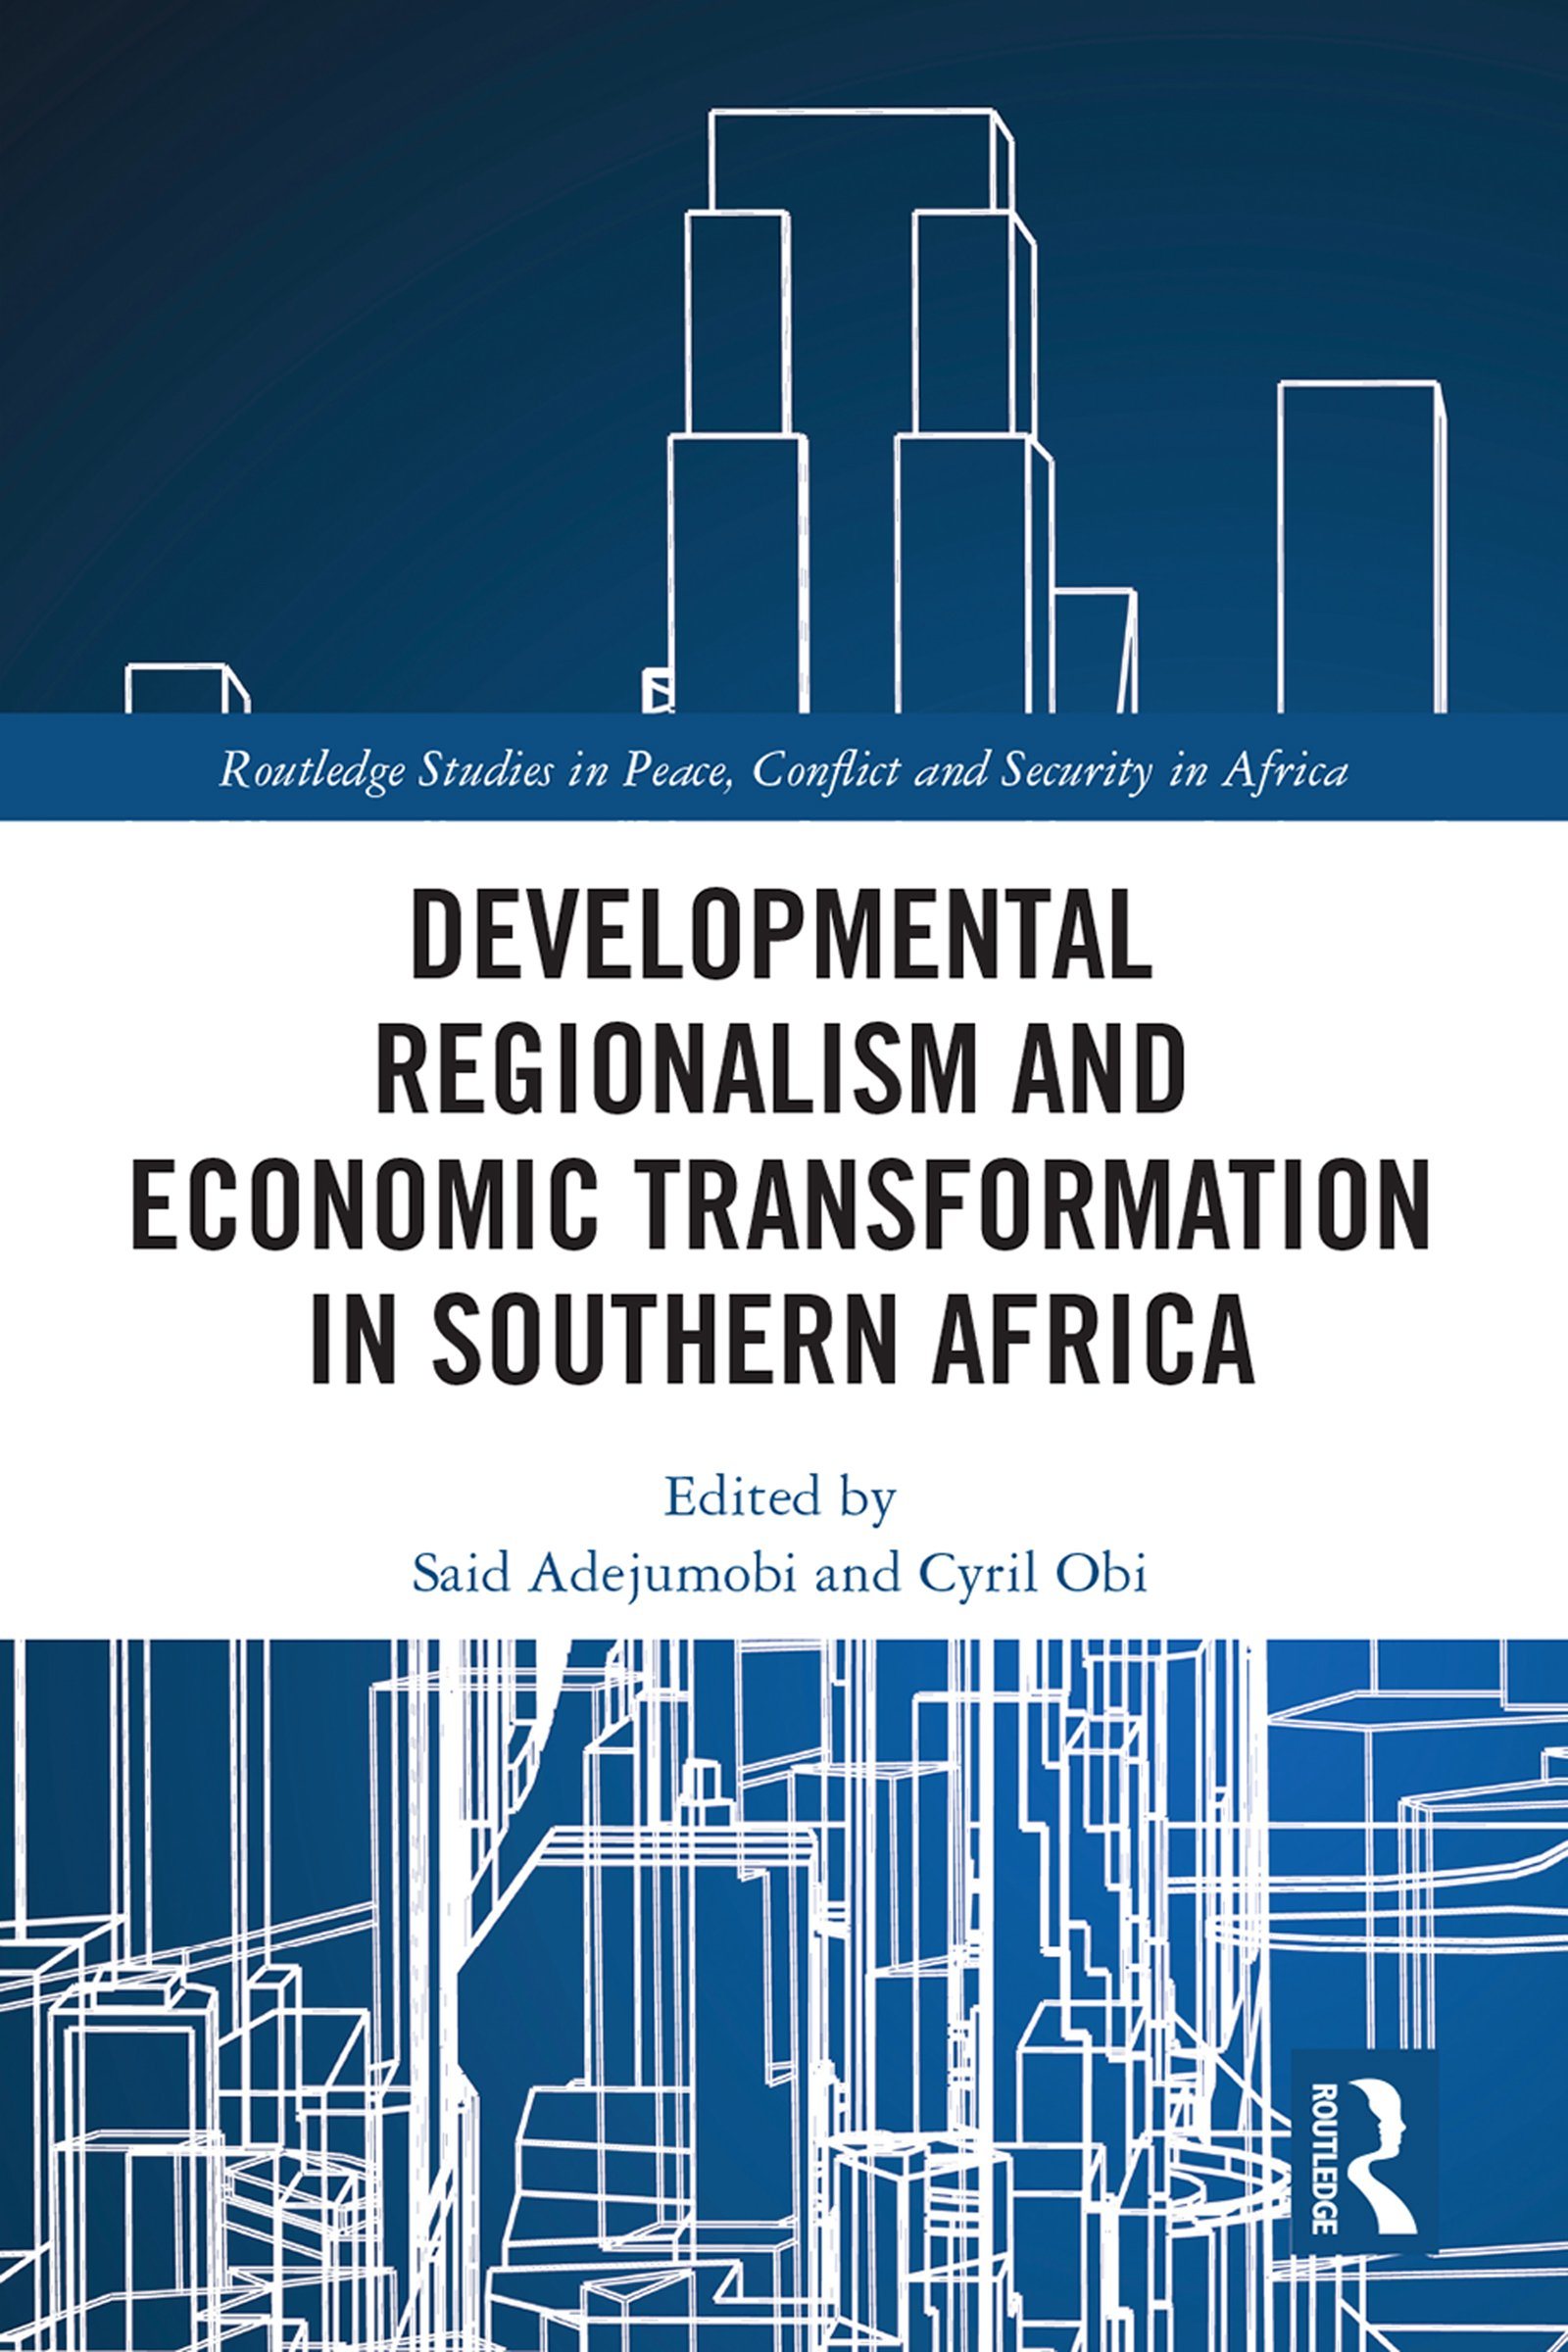 Immigration, xenophobia and developmental regionalism in Southern Africa